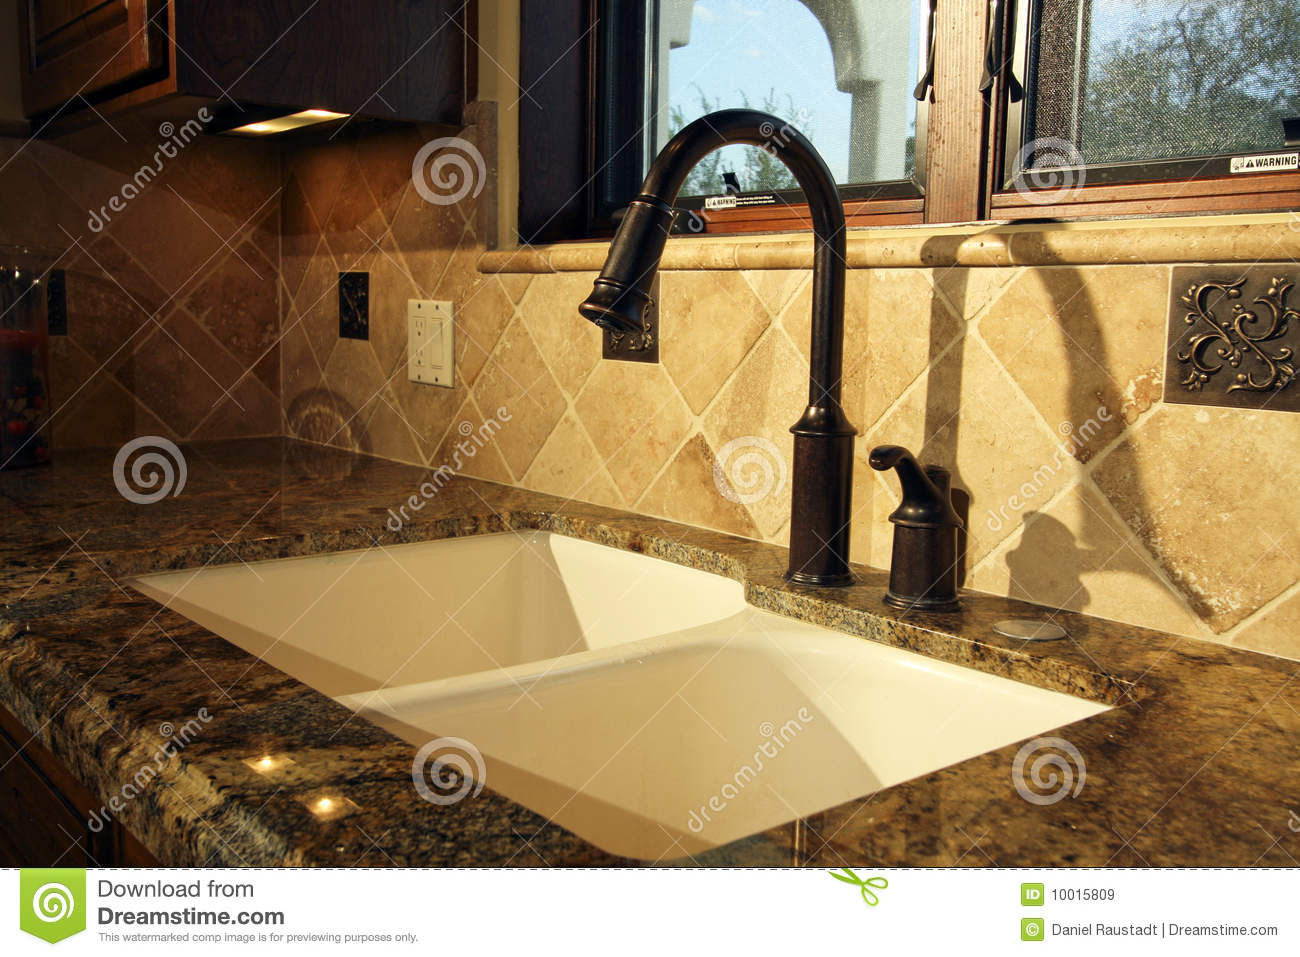 kitchen fixtures undermount white sink modern and stock image of appliance